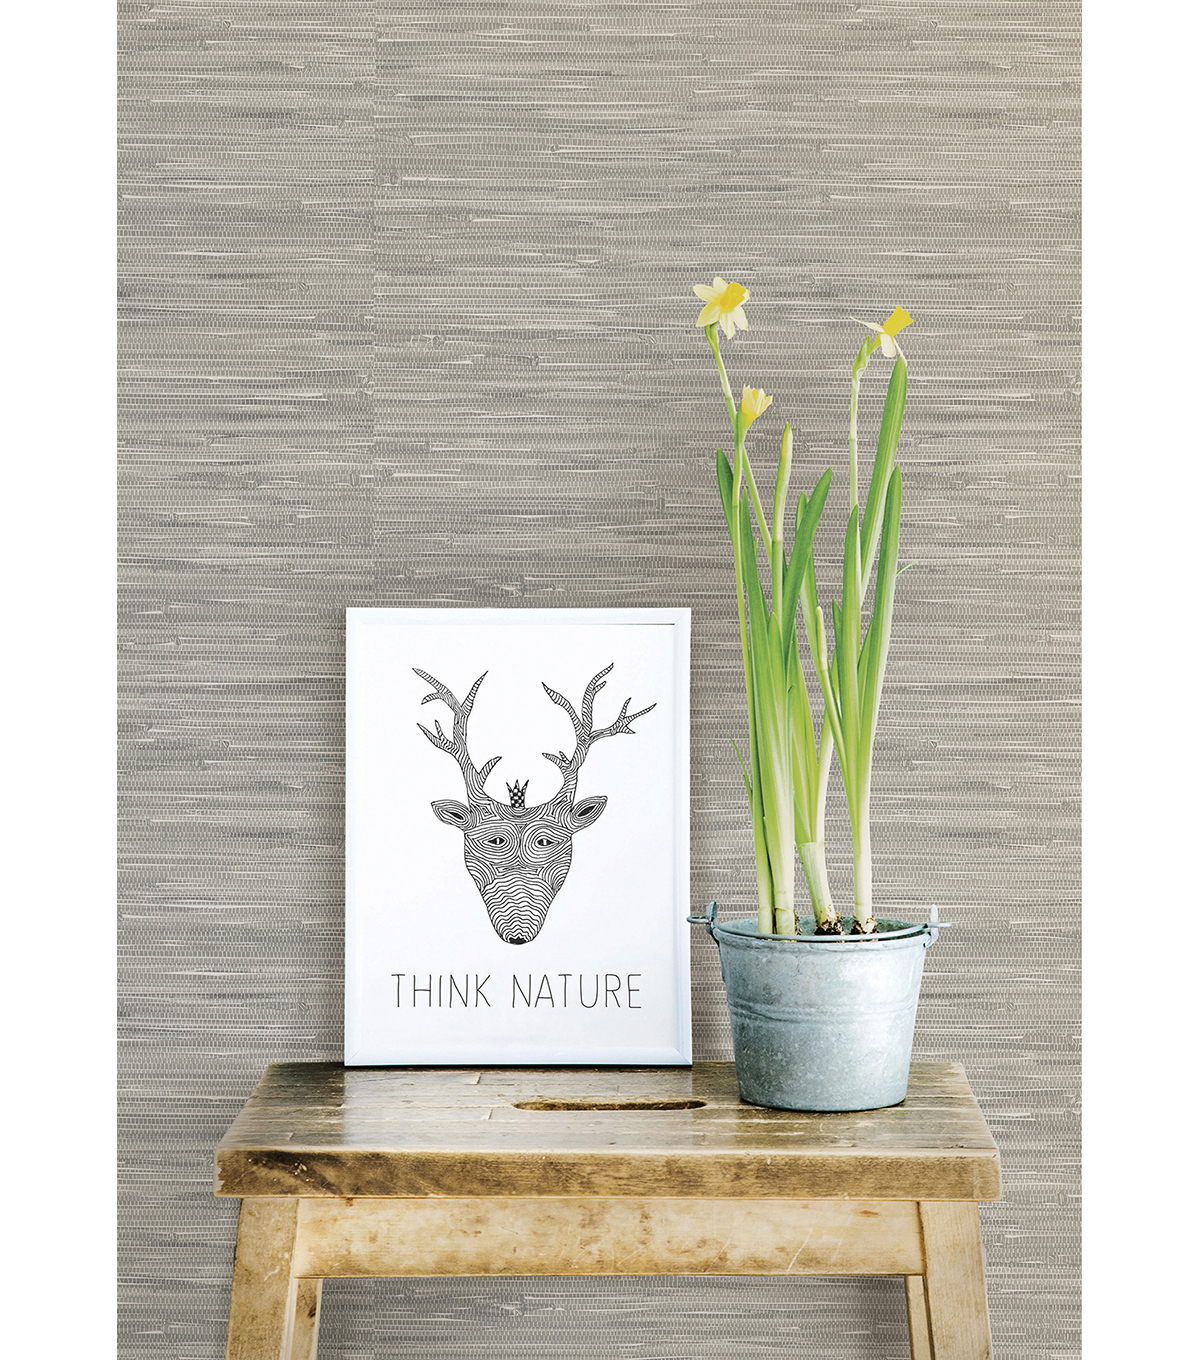 WallPops NuWallpaper Tibetan Grasscloth Peel and Stick Wallpaper